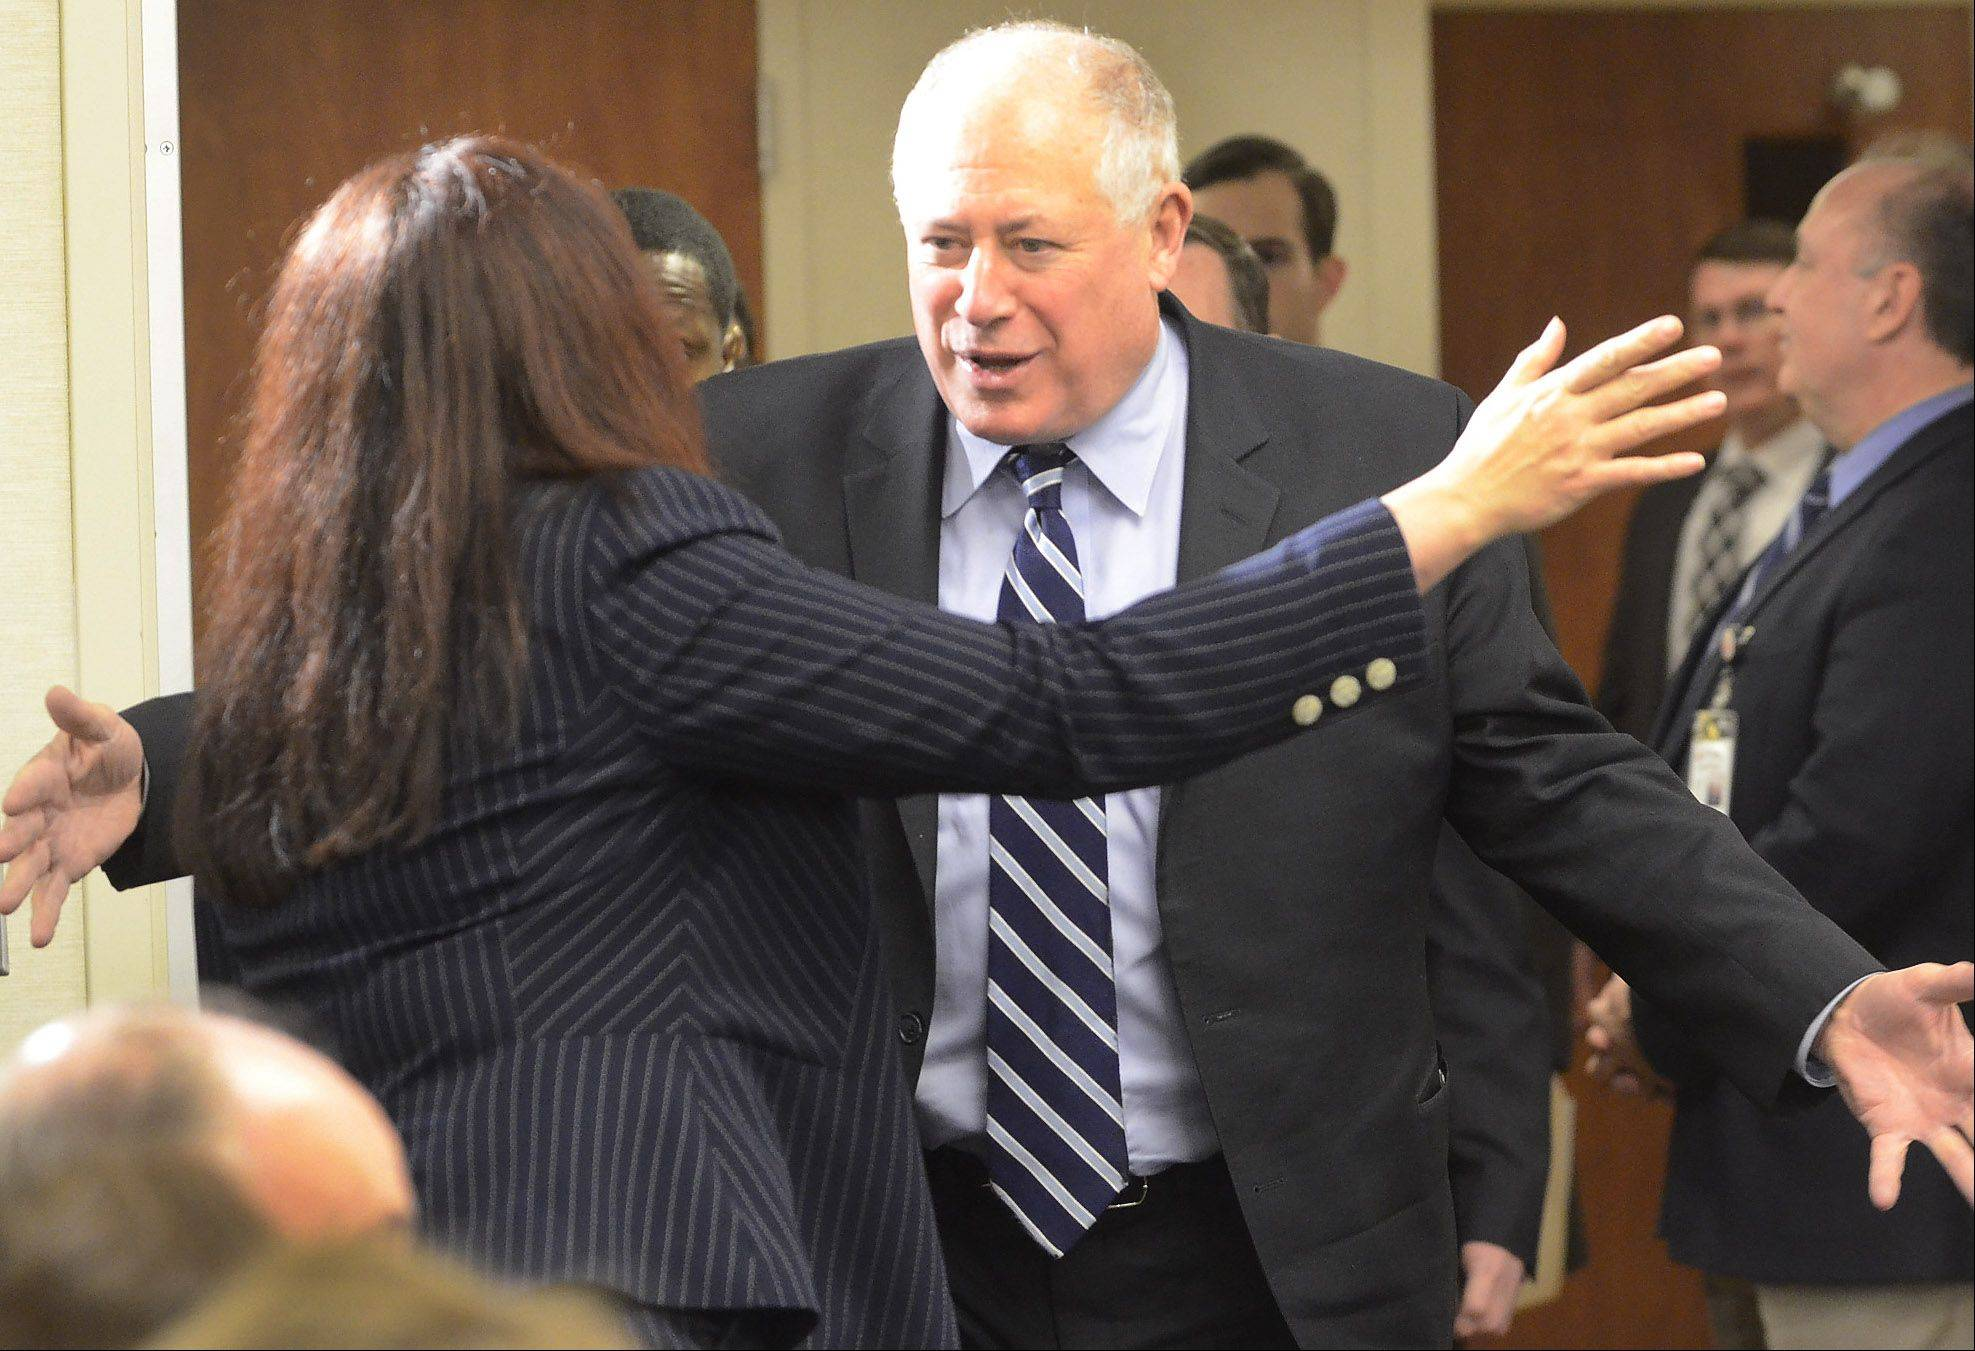 Gov. Pat Quinn is greeted by Congresswoman Tammy Duckworth before announcing Friday at Alexian Brothers Women & Children's Hospital a $68 million project to build a full tollway interchange at Barrington Road and I-90 in Hoffman Estates.